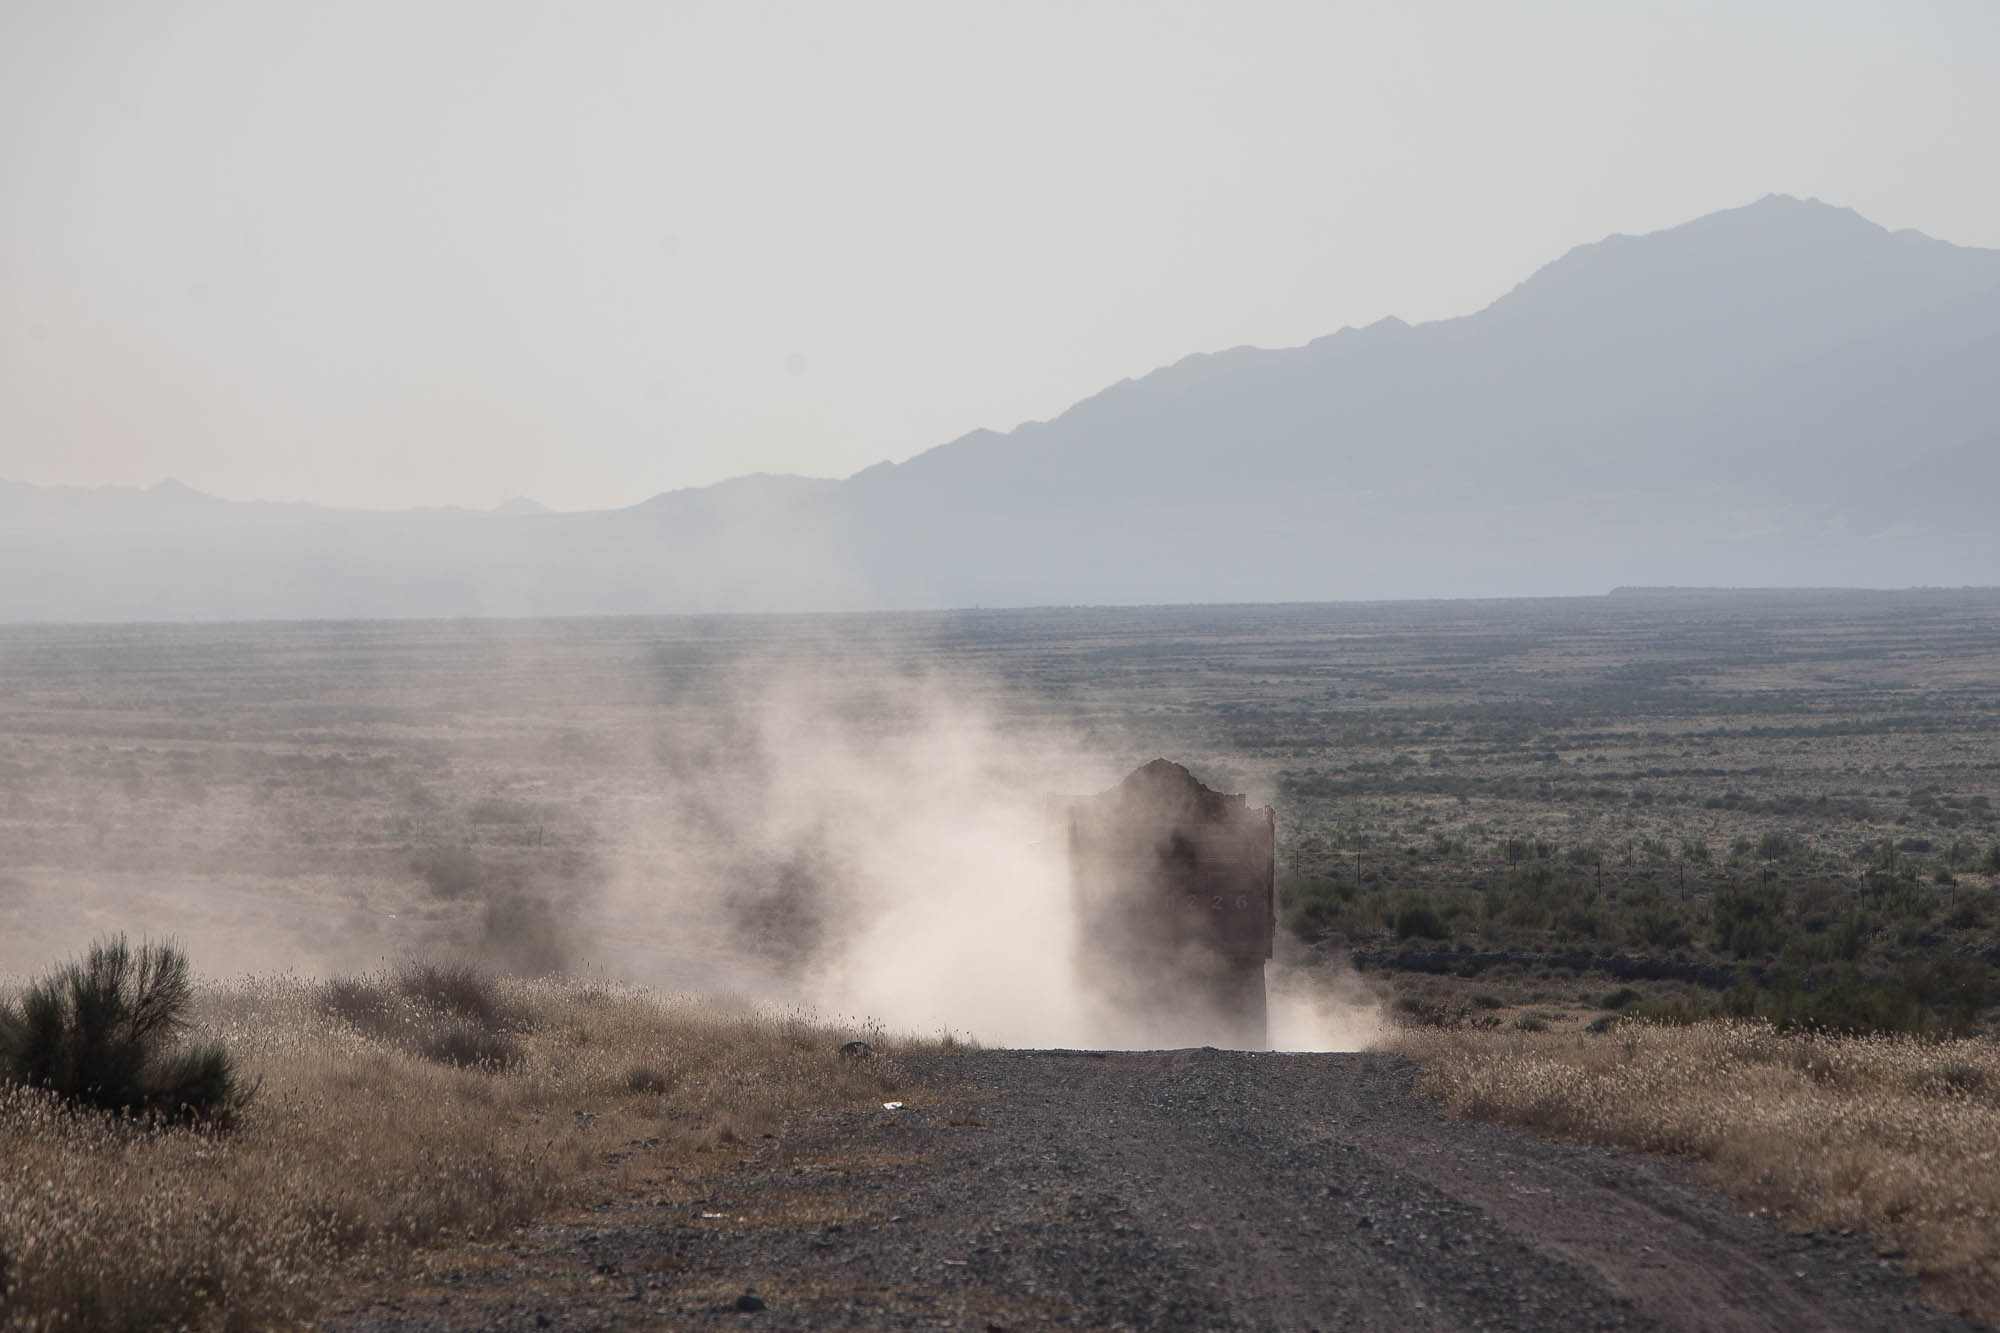 truck in the dust